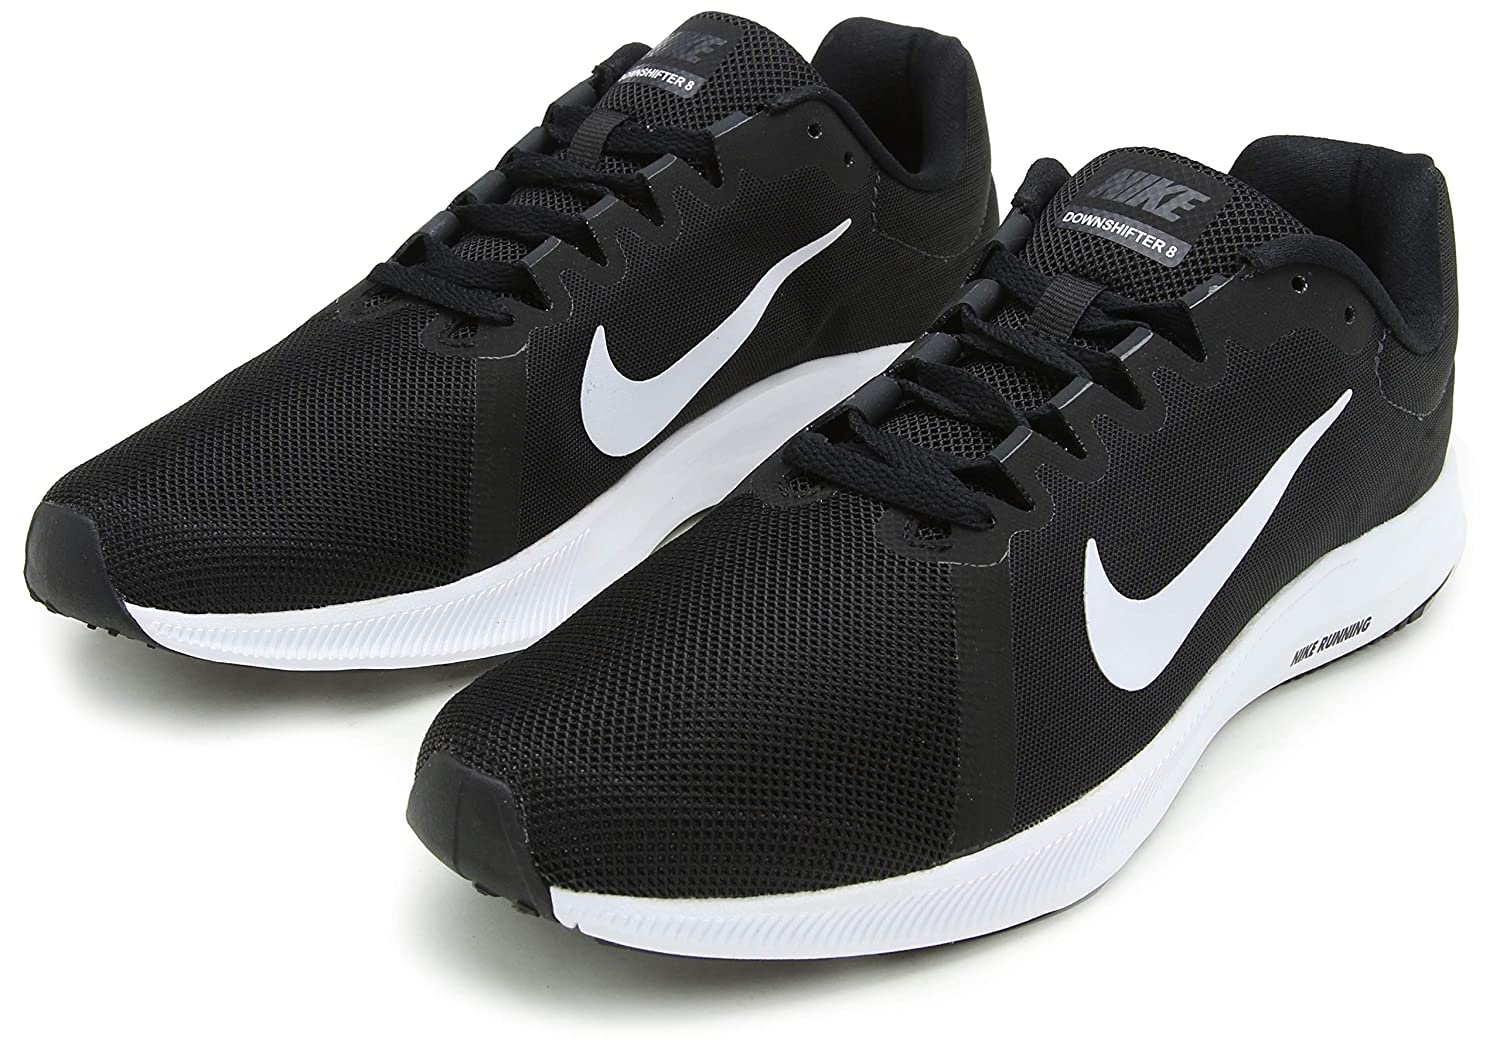 online store 735cc 26fb8 Nike Downshifter 8, Chaussures de Running Homme  Amazon.fr  Chaussures et  Sacs